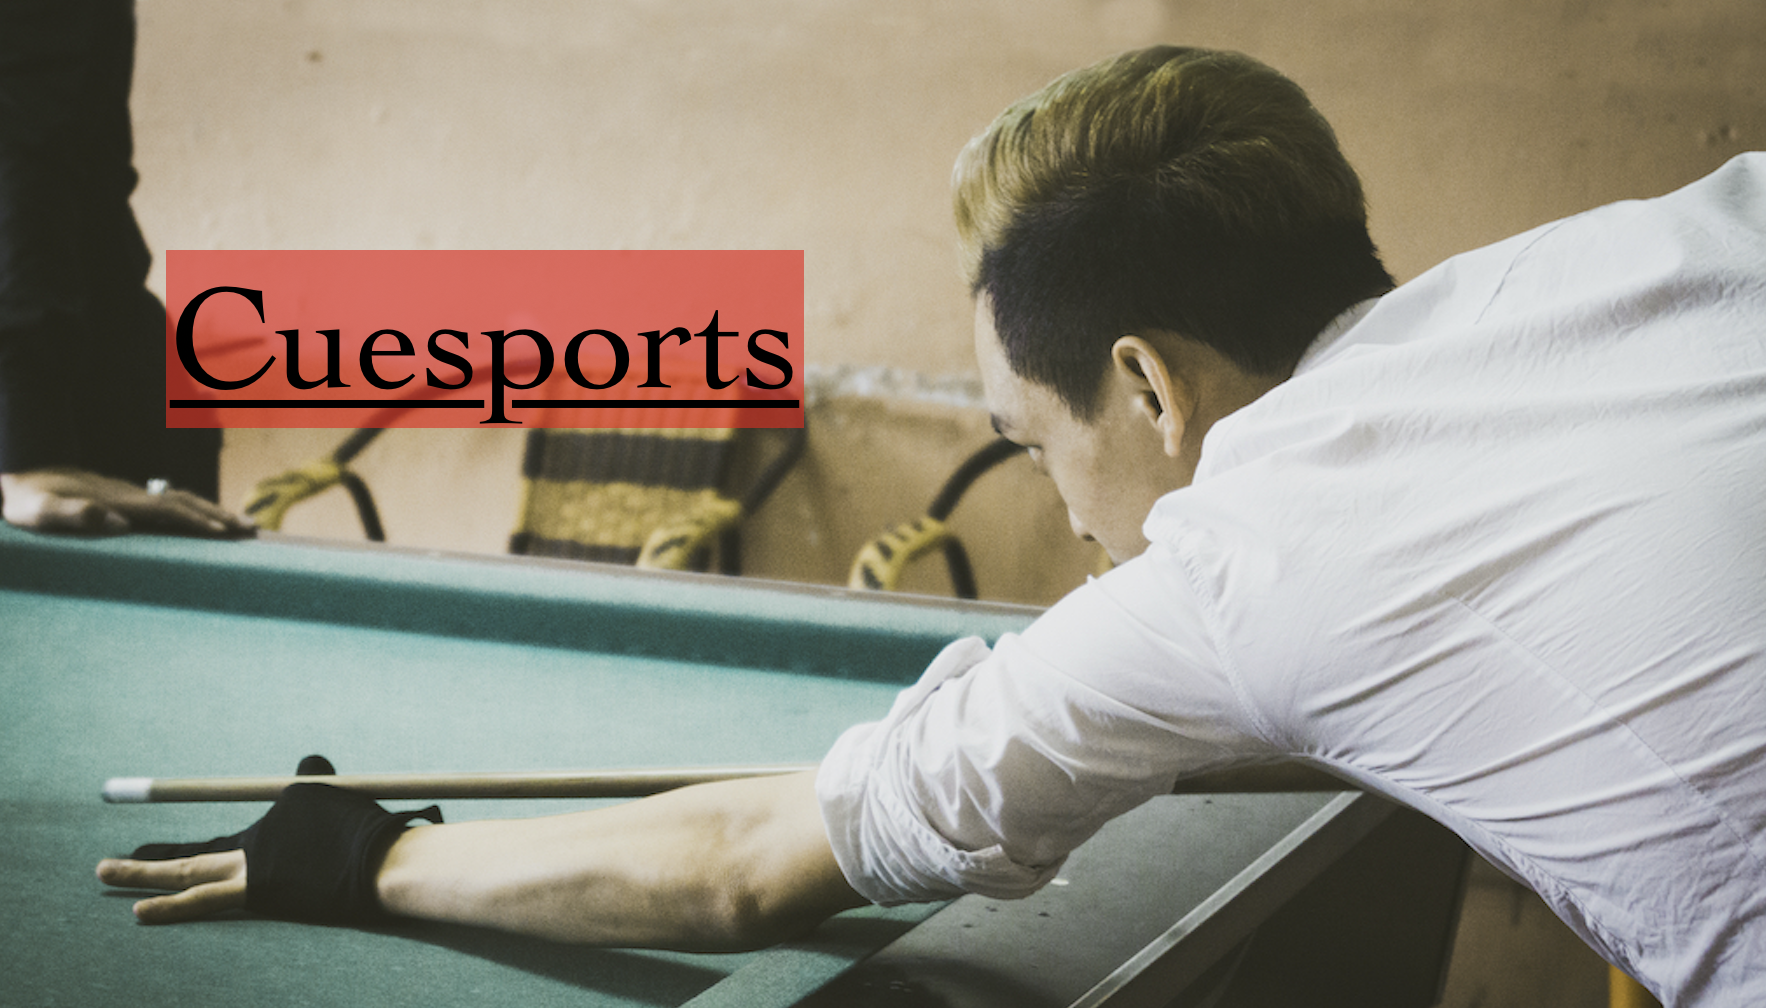 cuesports MOS.jpg (25 documents, 25 total pages) 2020-04-07 14-36-25